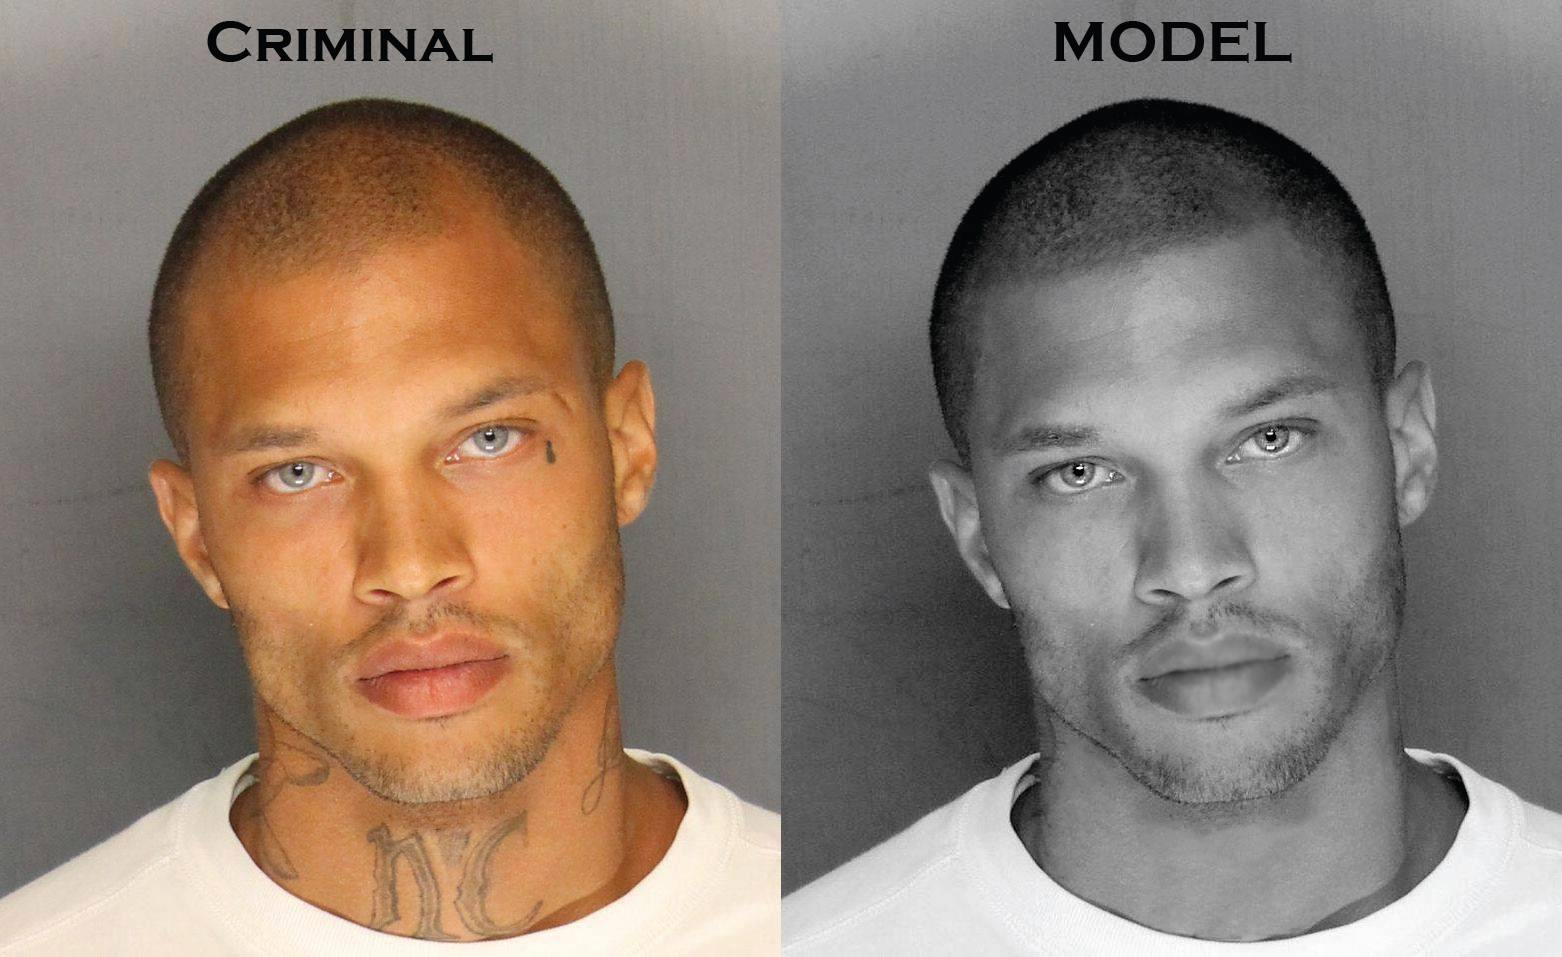 hot_convict_jeremy_meeks_is_now_a_free_man_and_a_model_00